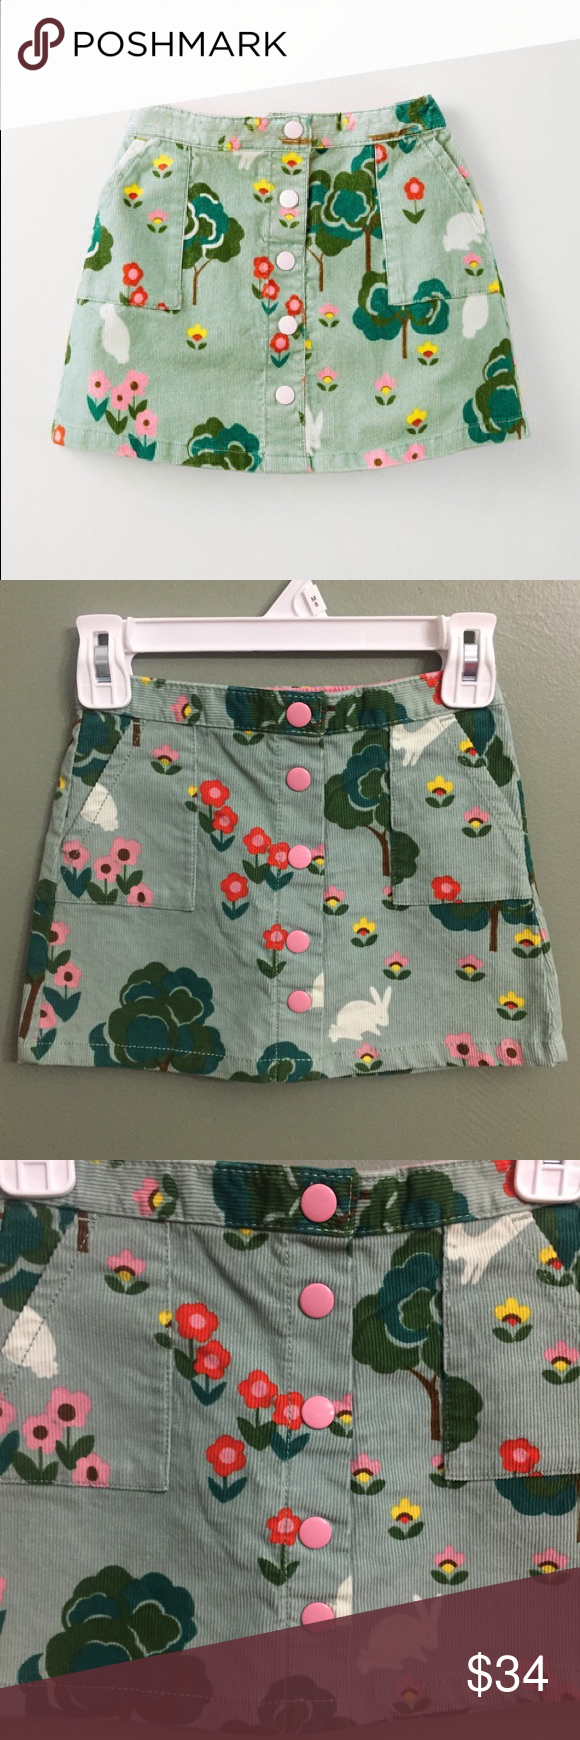 f73567c06 NWT Mini Boden Eton Blue Bunny Meadow Cord Skirt This lovely skirt comes in  extra hard-wearing fabrics with handy popper fastenings.